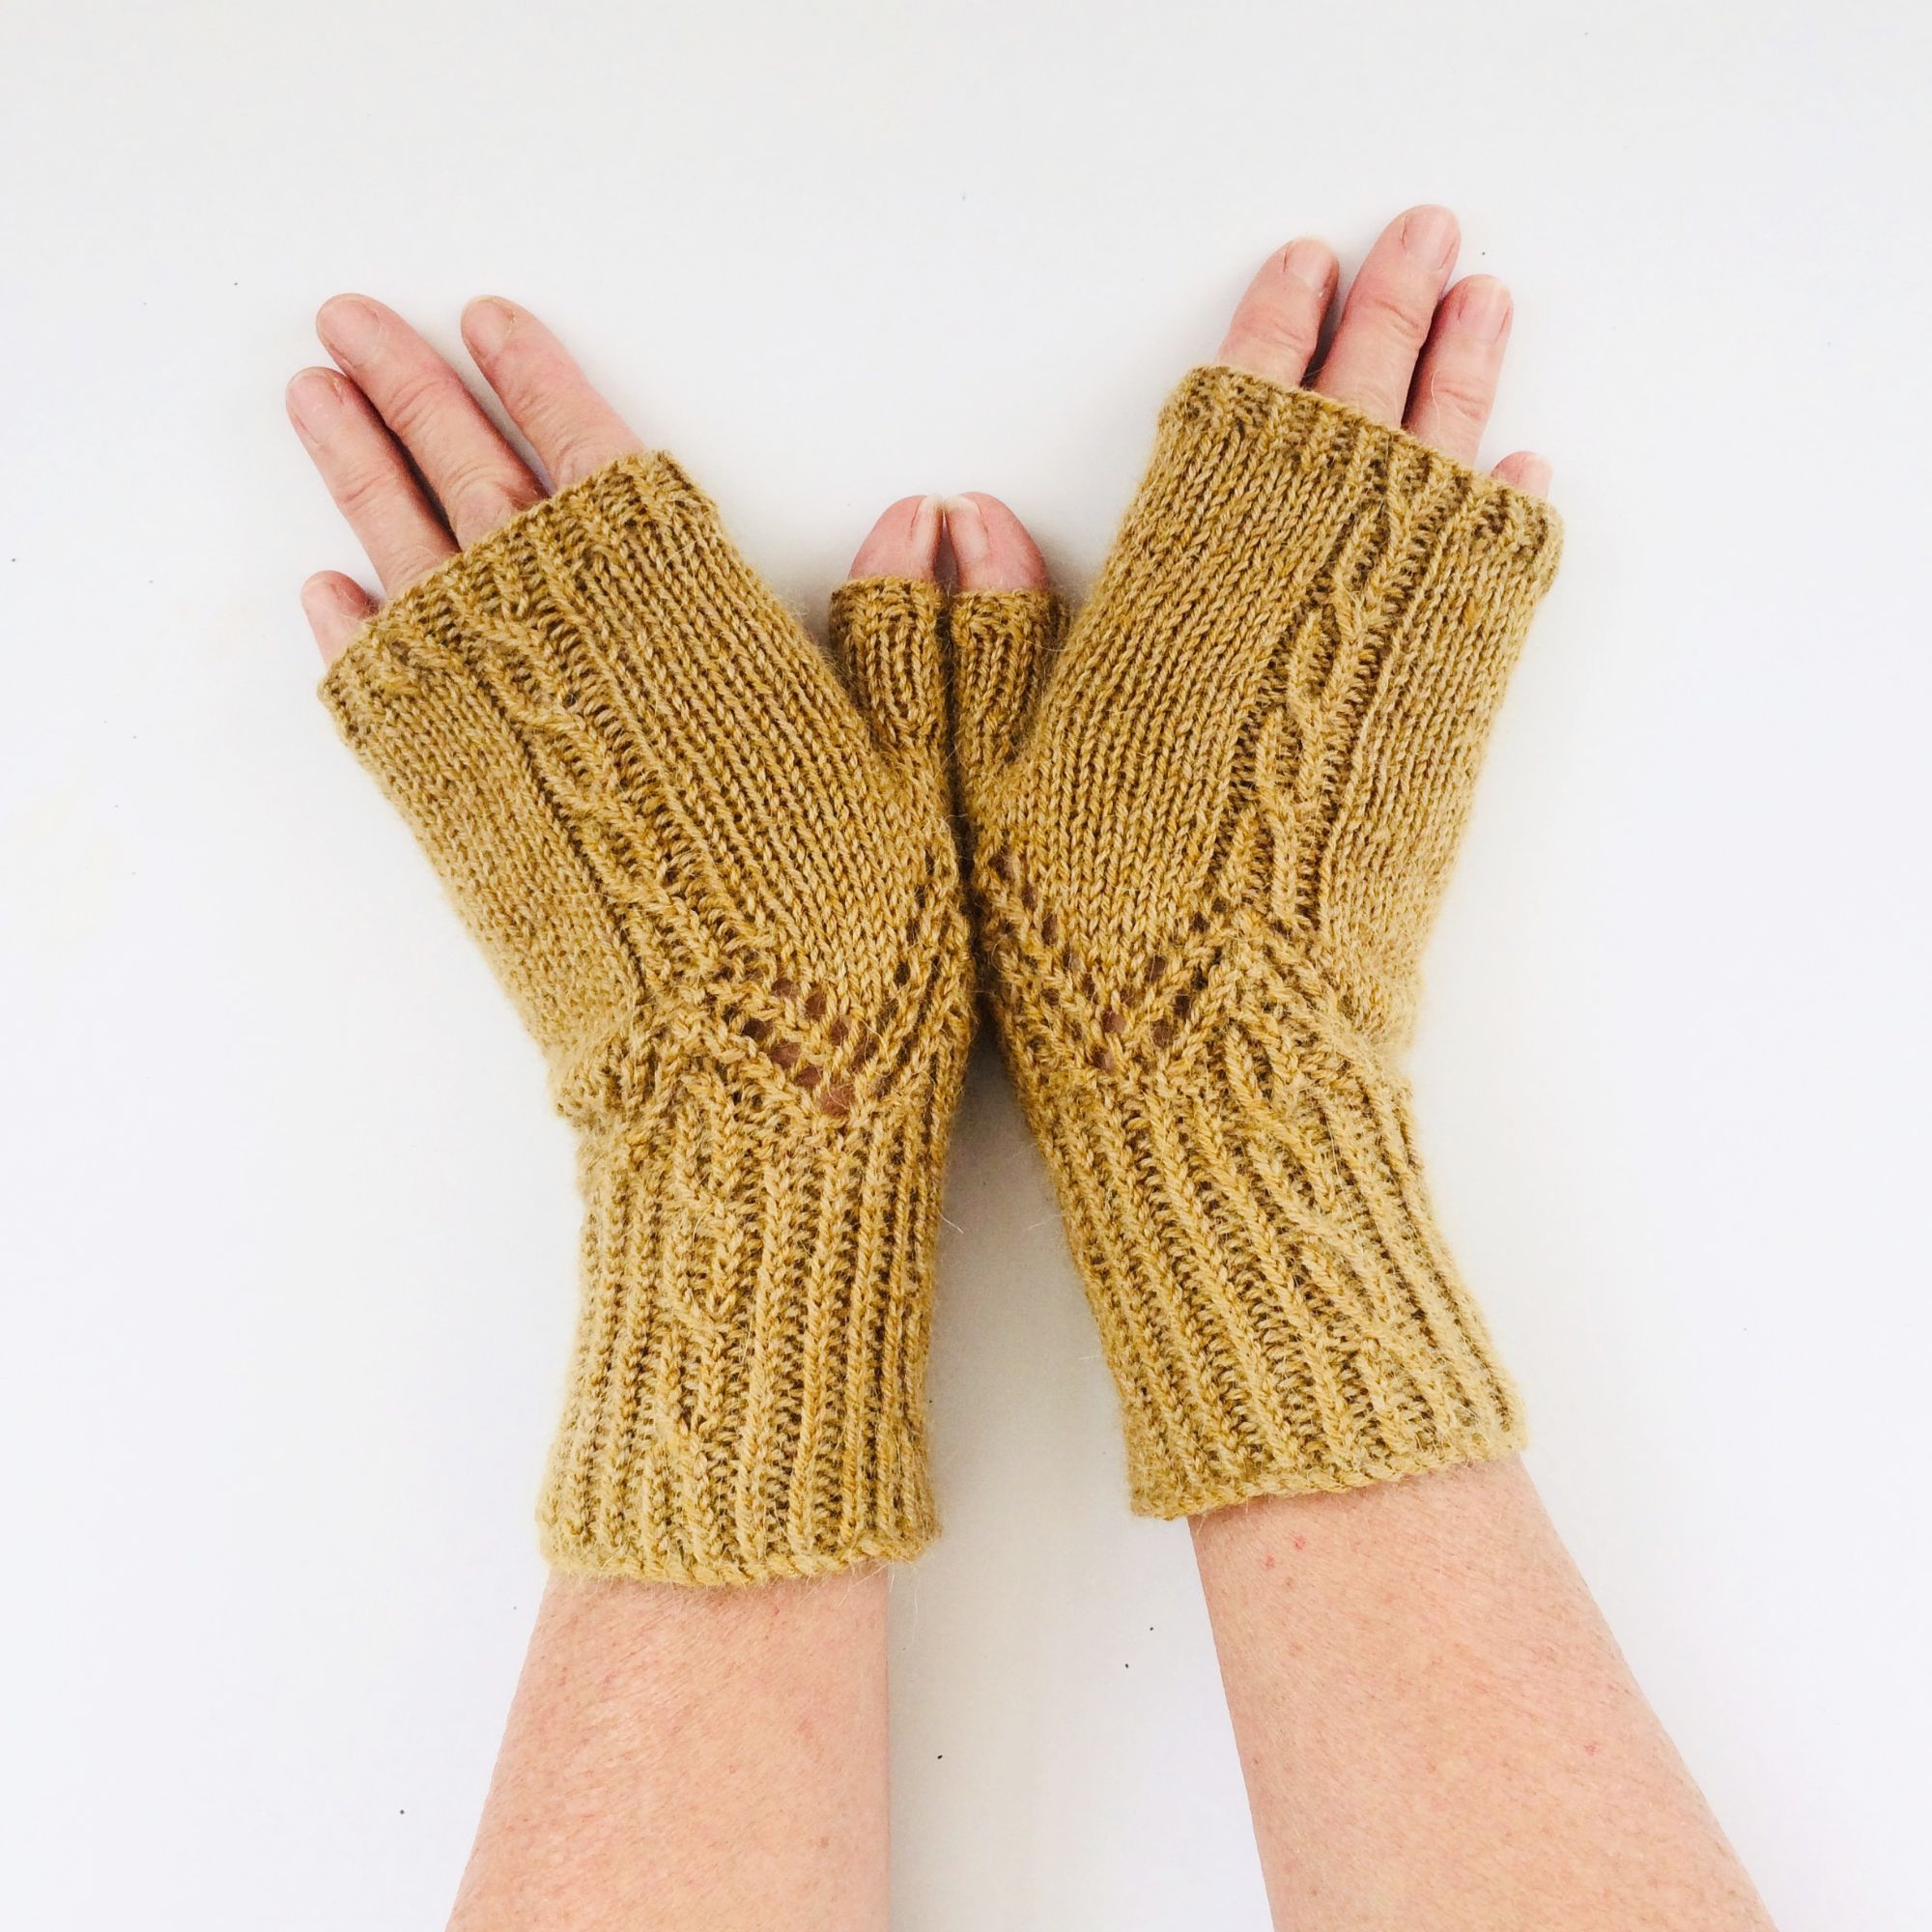 Popple Gloves Kit